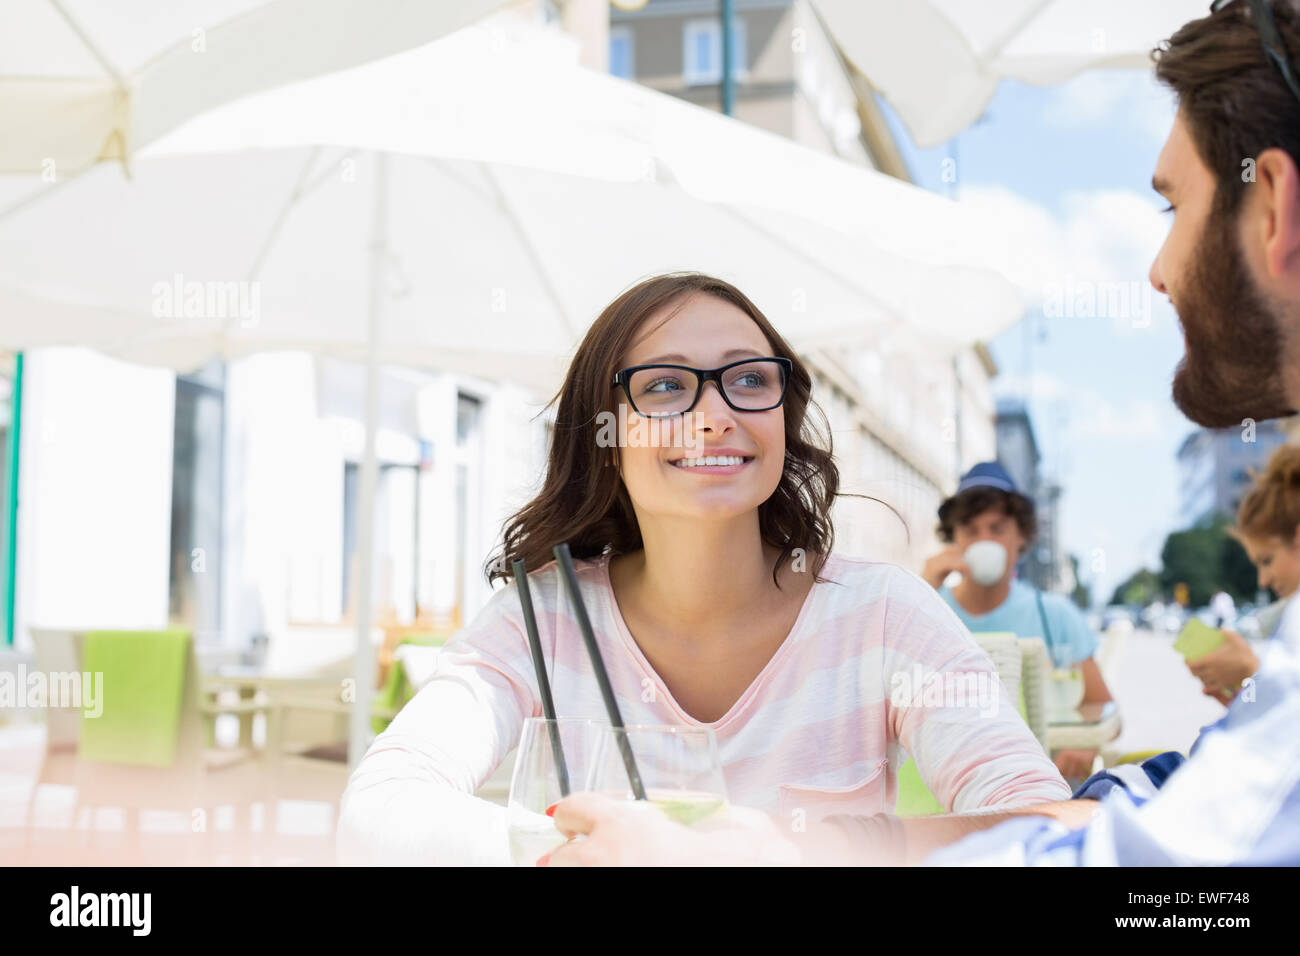 Smiling woman sitting with man at sidewalk cafe - Stock Image